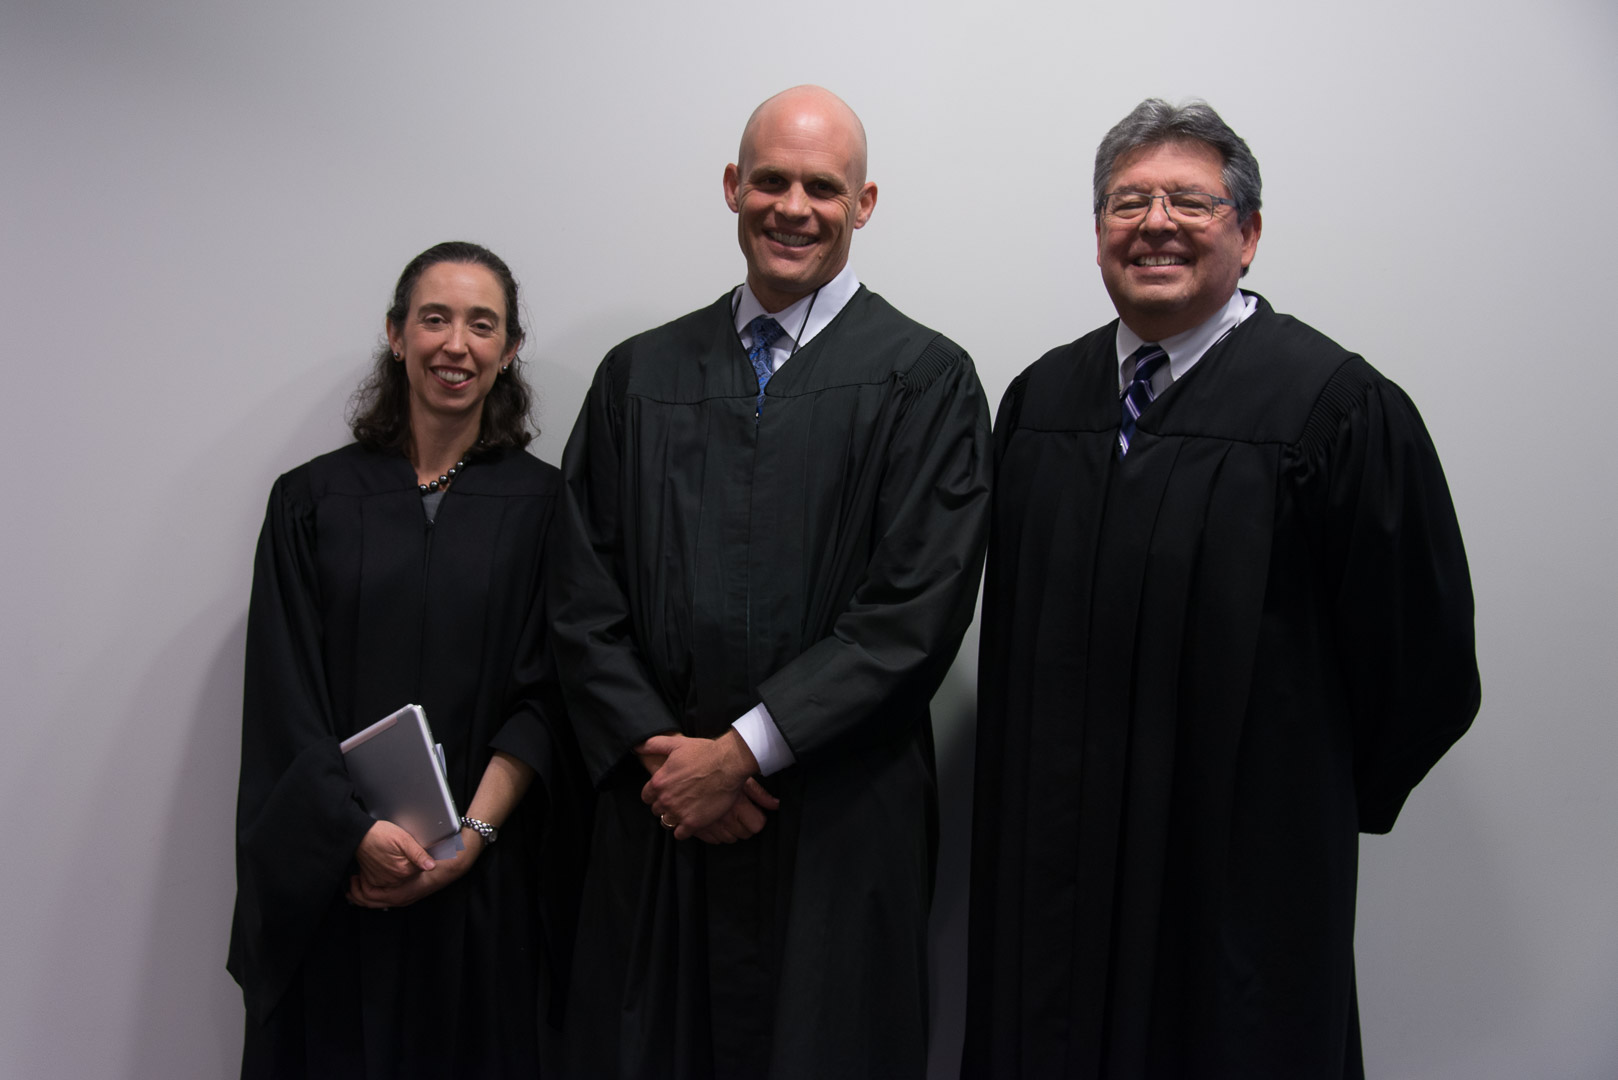 2018 SVUDL Moot Court Competition Panelists: the Honorable Judge Michelle Friedland and the Honorable Judge John Owens  of the United States Court of Appeals for the Ninth Circuit, and the Honorable Judge Ed Davila of the United States District Court, Northern District of California.